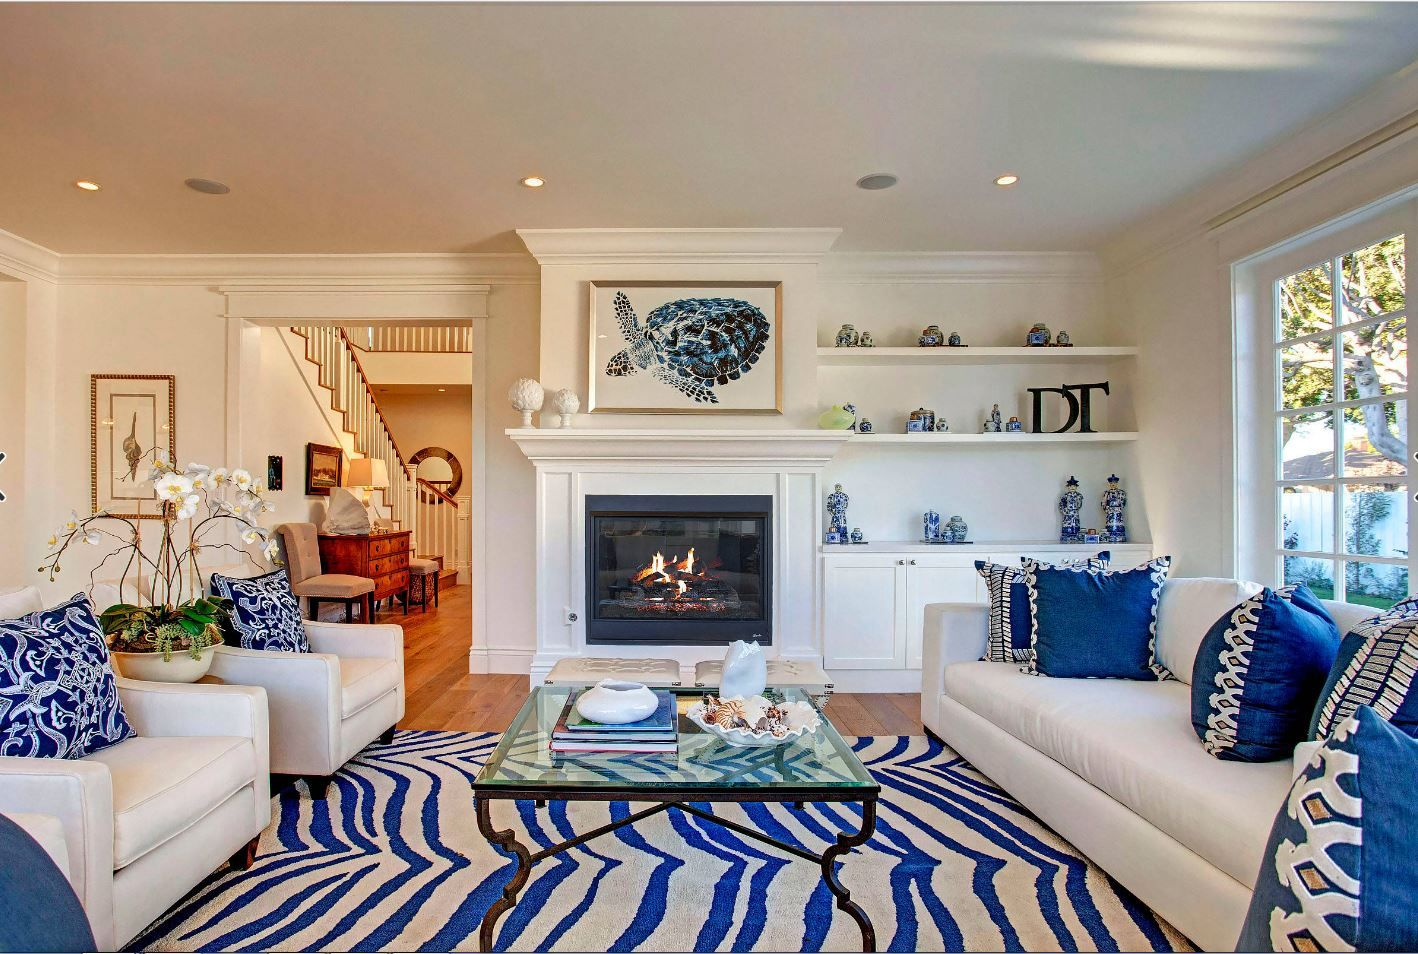 Living Room Fireplace Off Centered Small Decoration Pics Center Ideas Home Design In 2019